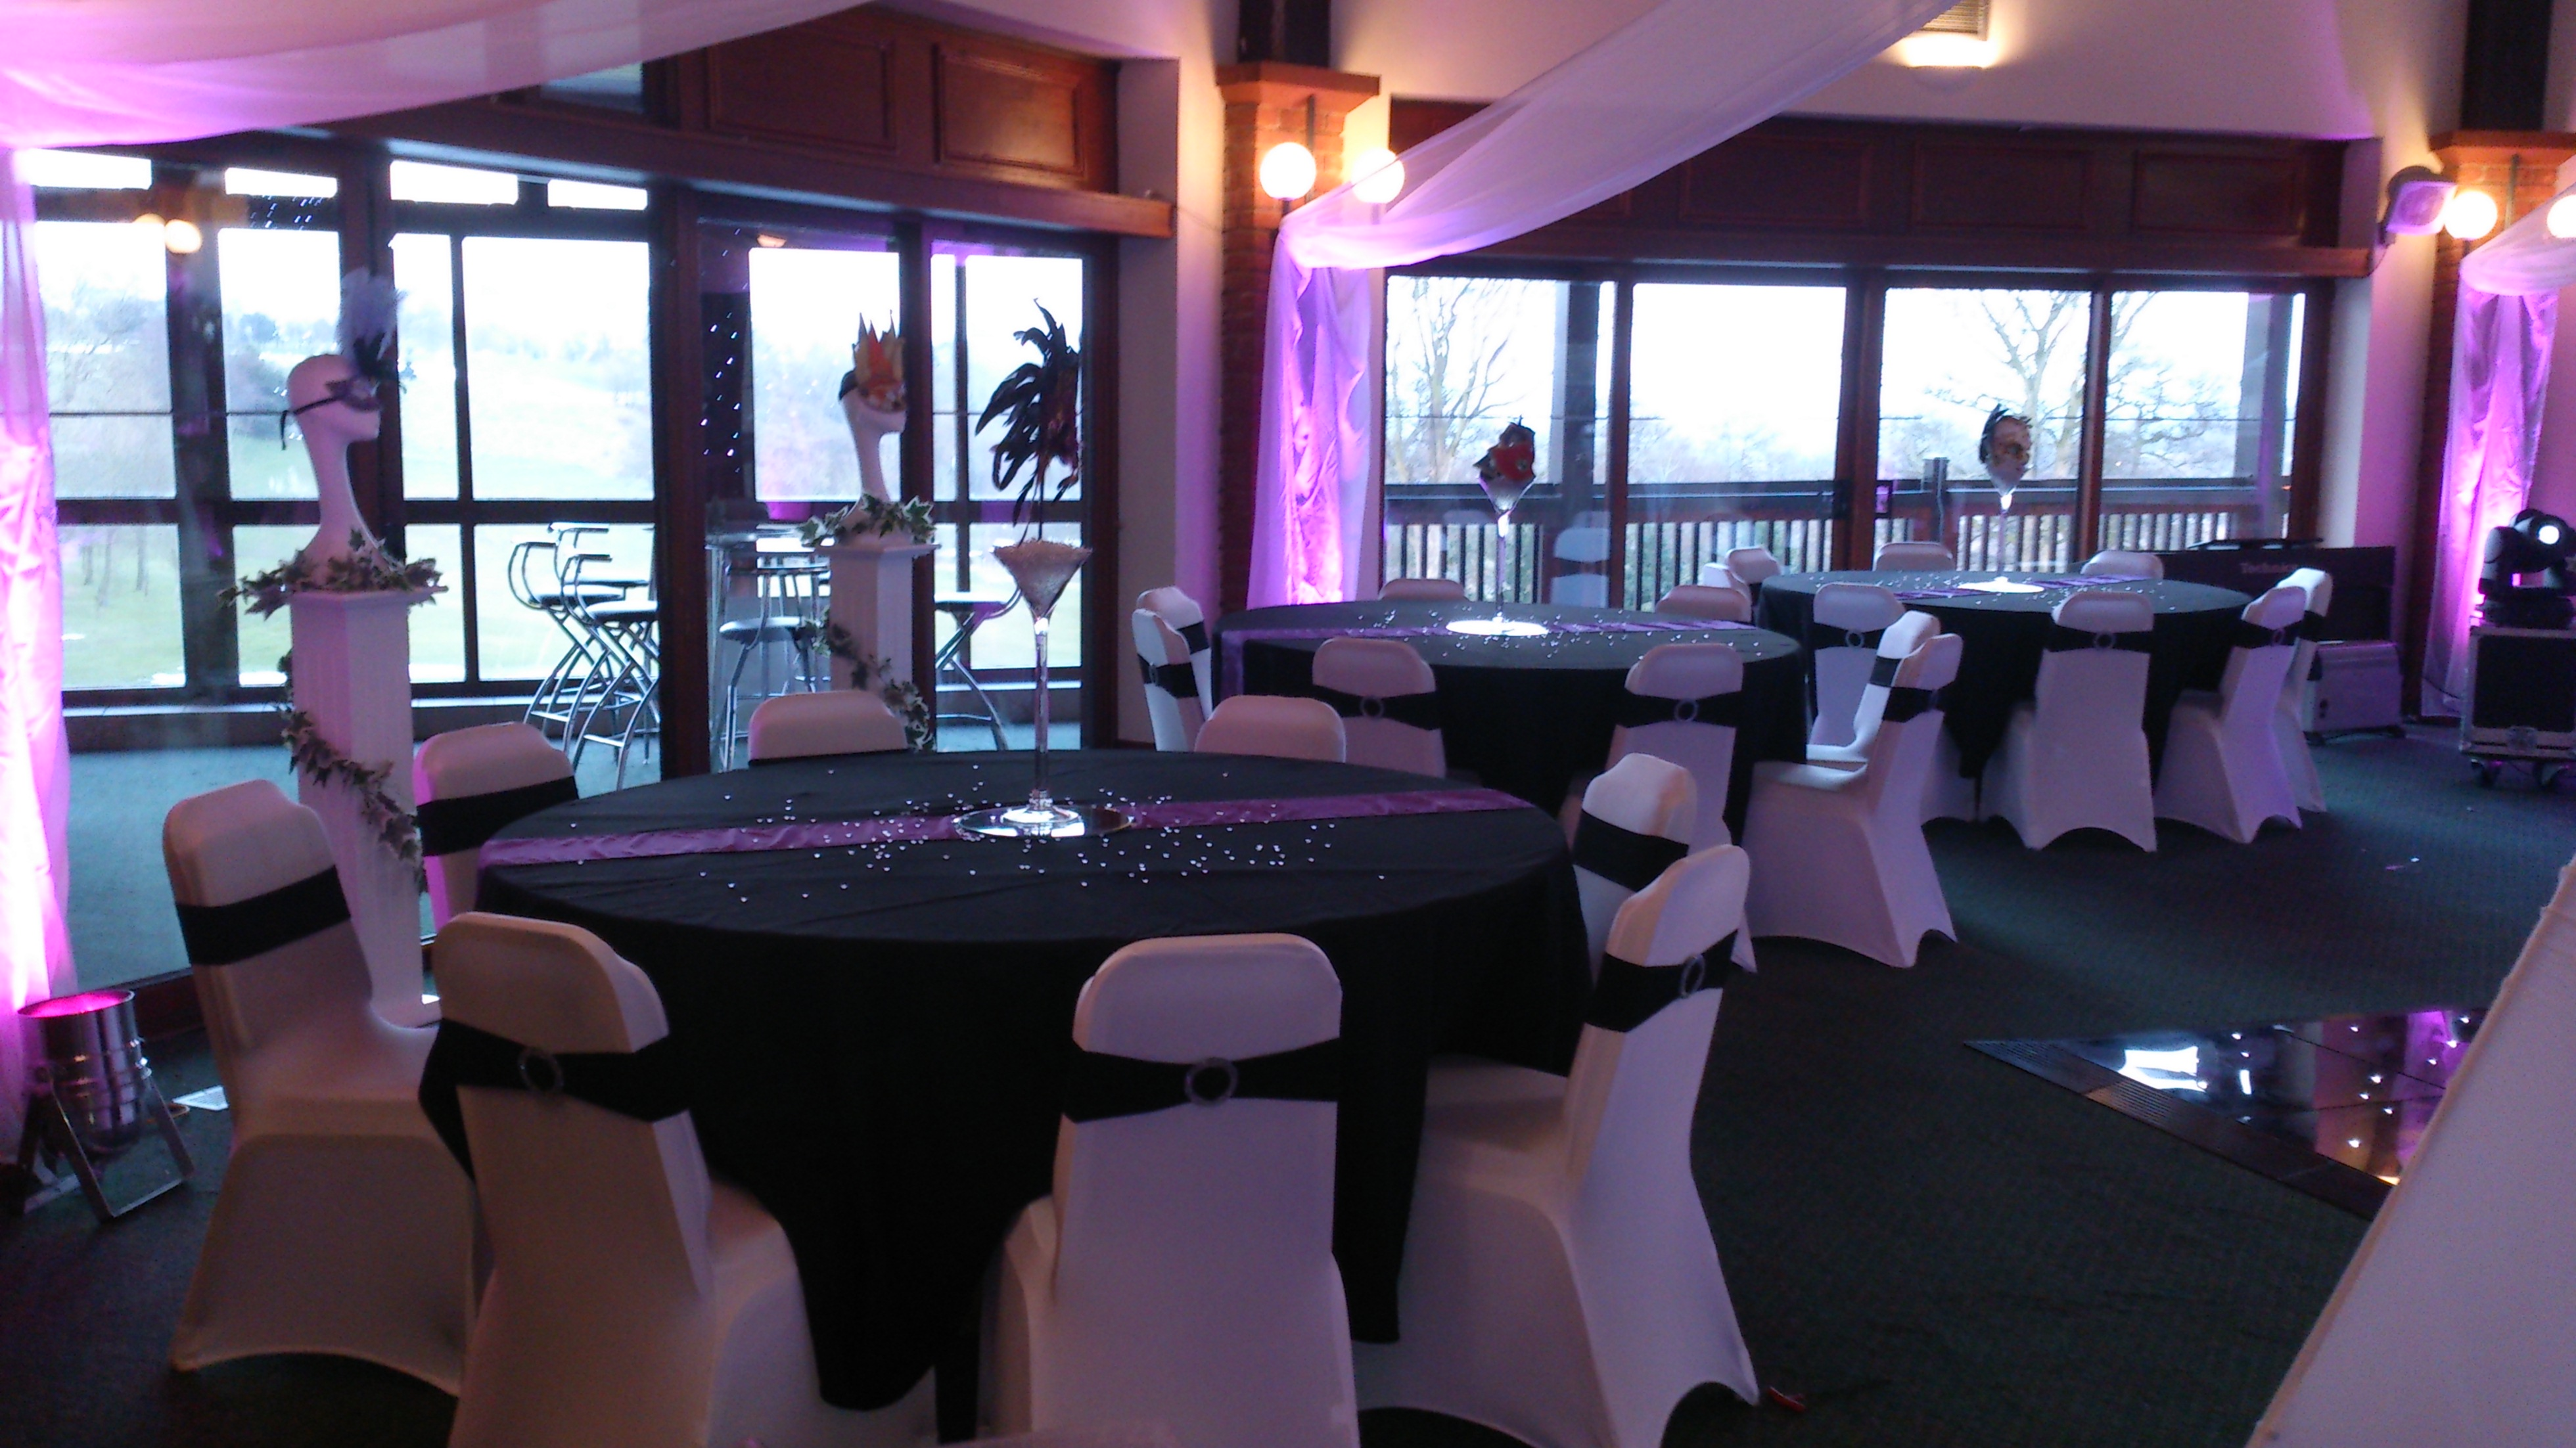 School prom venue dressers woodyatt warner for How can prom venues be decorated